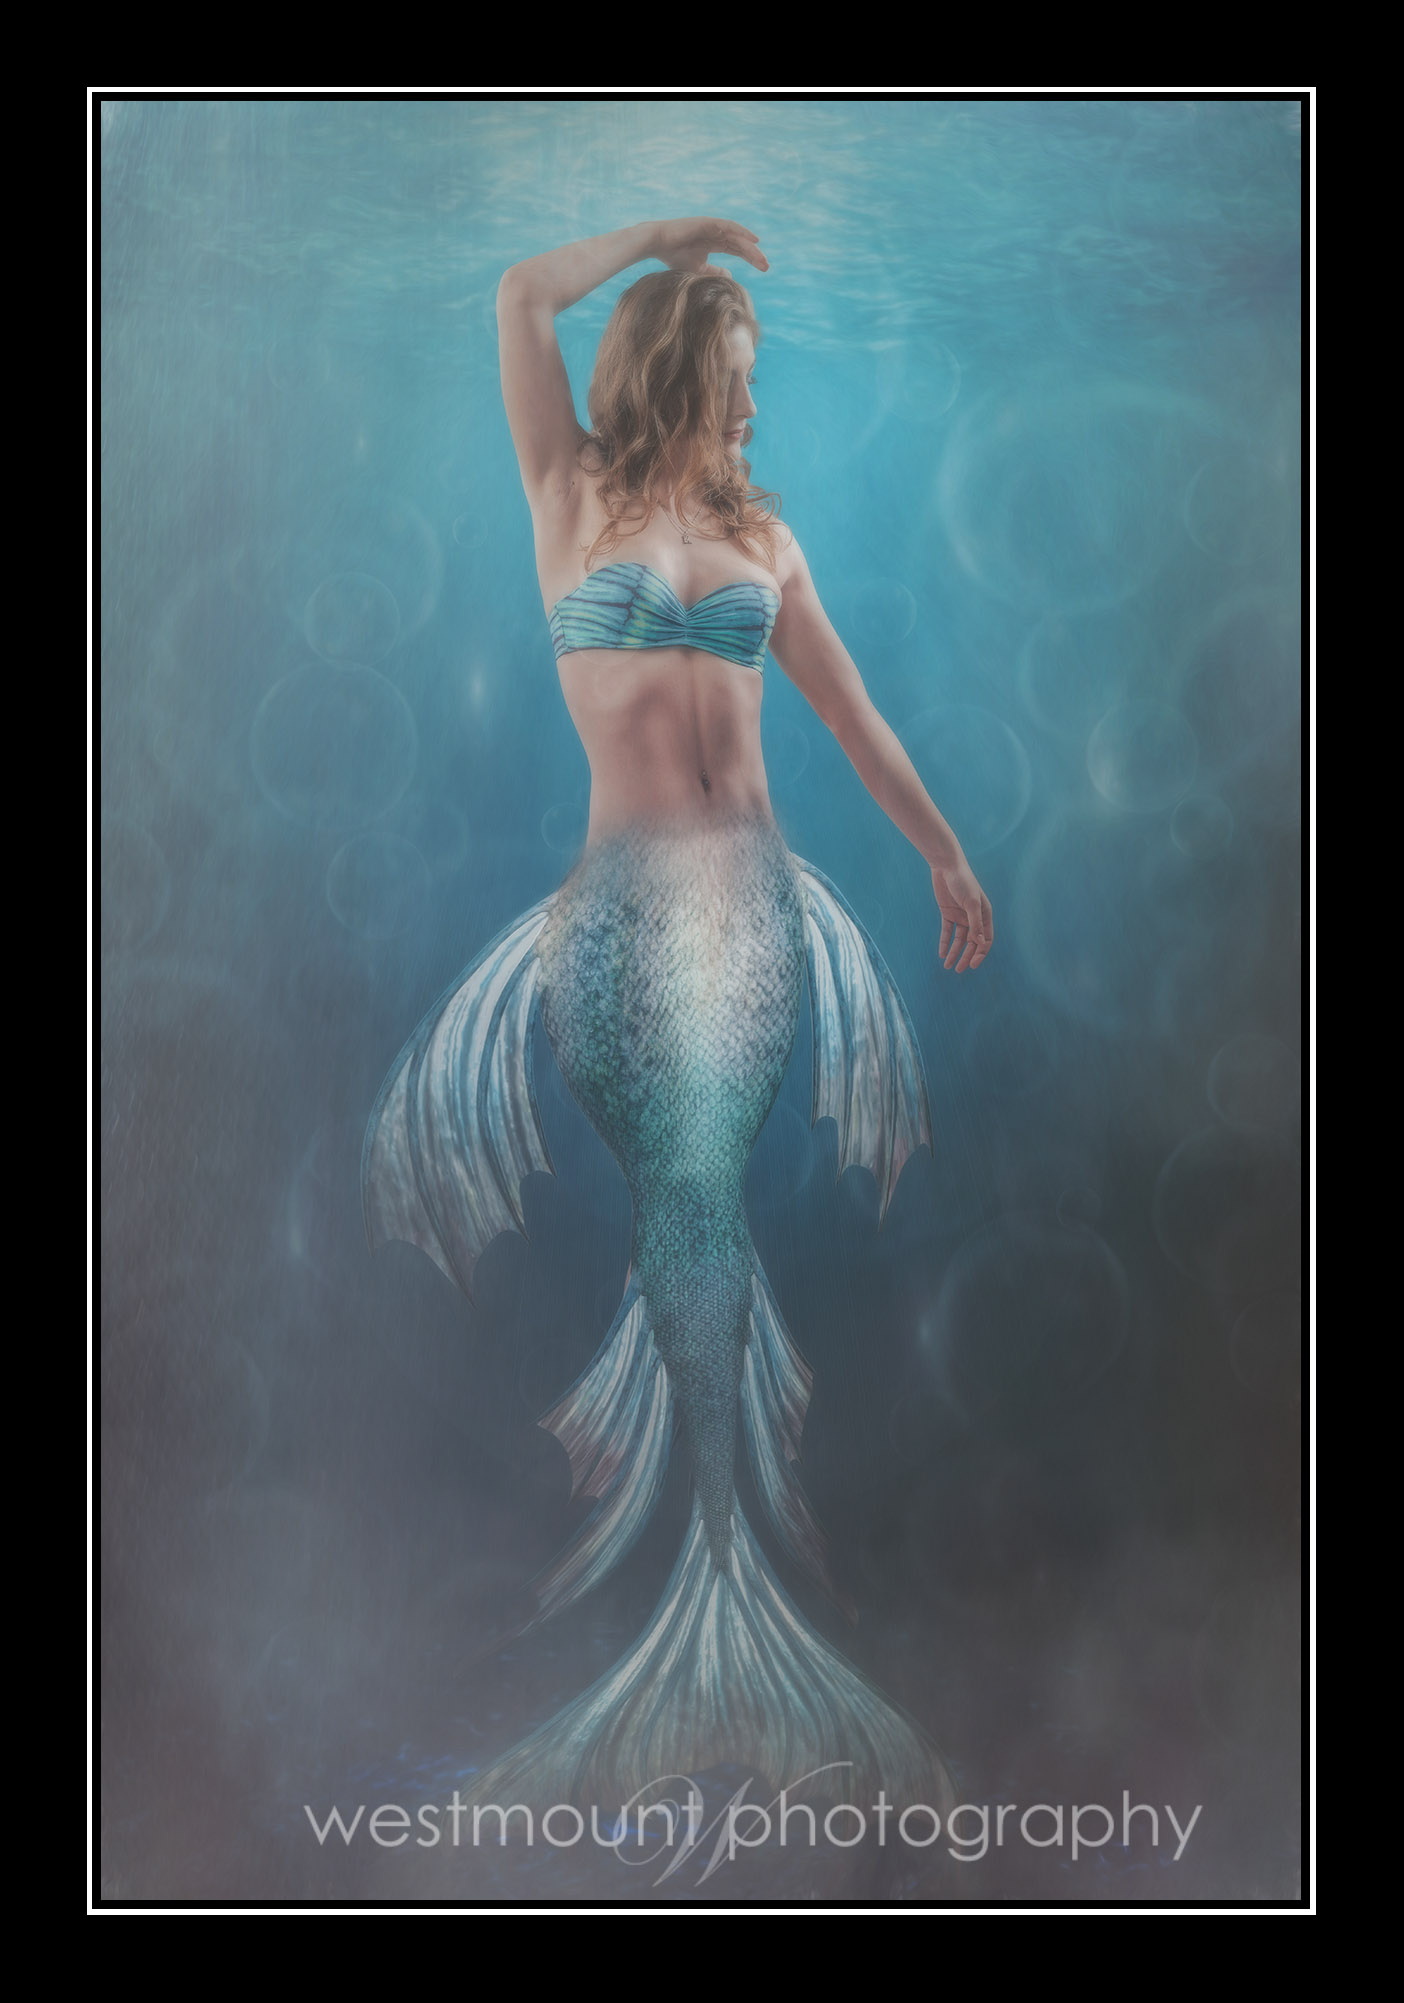 Playing with mermaids….